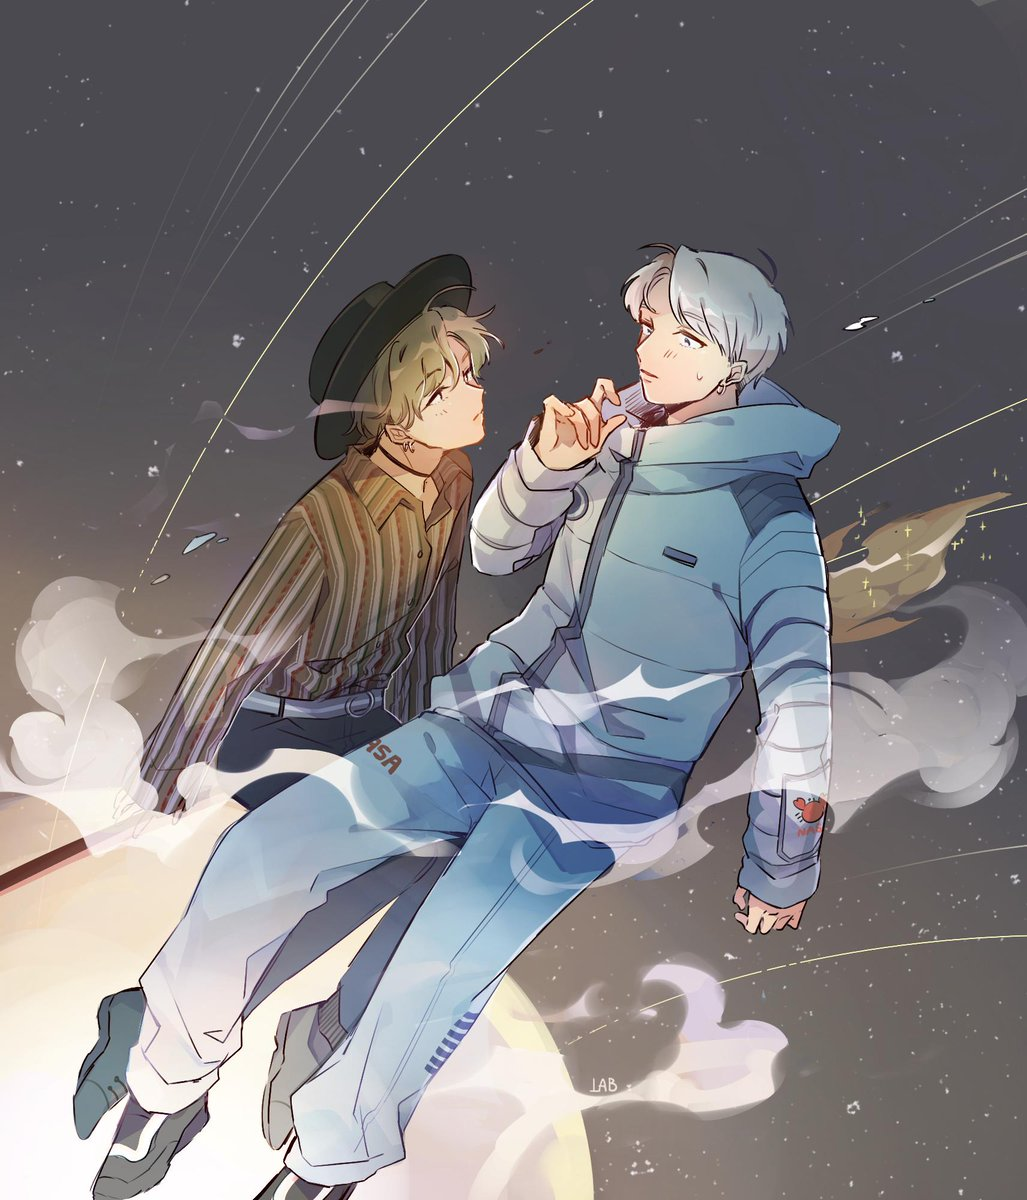 the witch and the astronaut #namgi #btsfanart @BTS_twt<br>http://pic.twitter.com/JzKrGQ6NKU